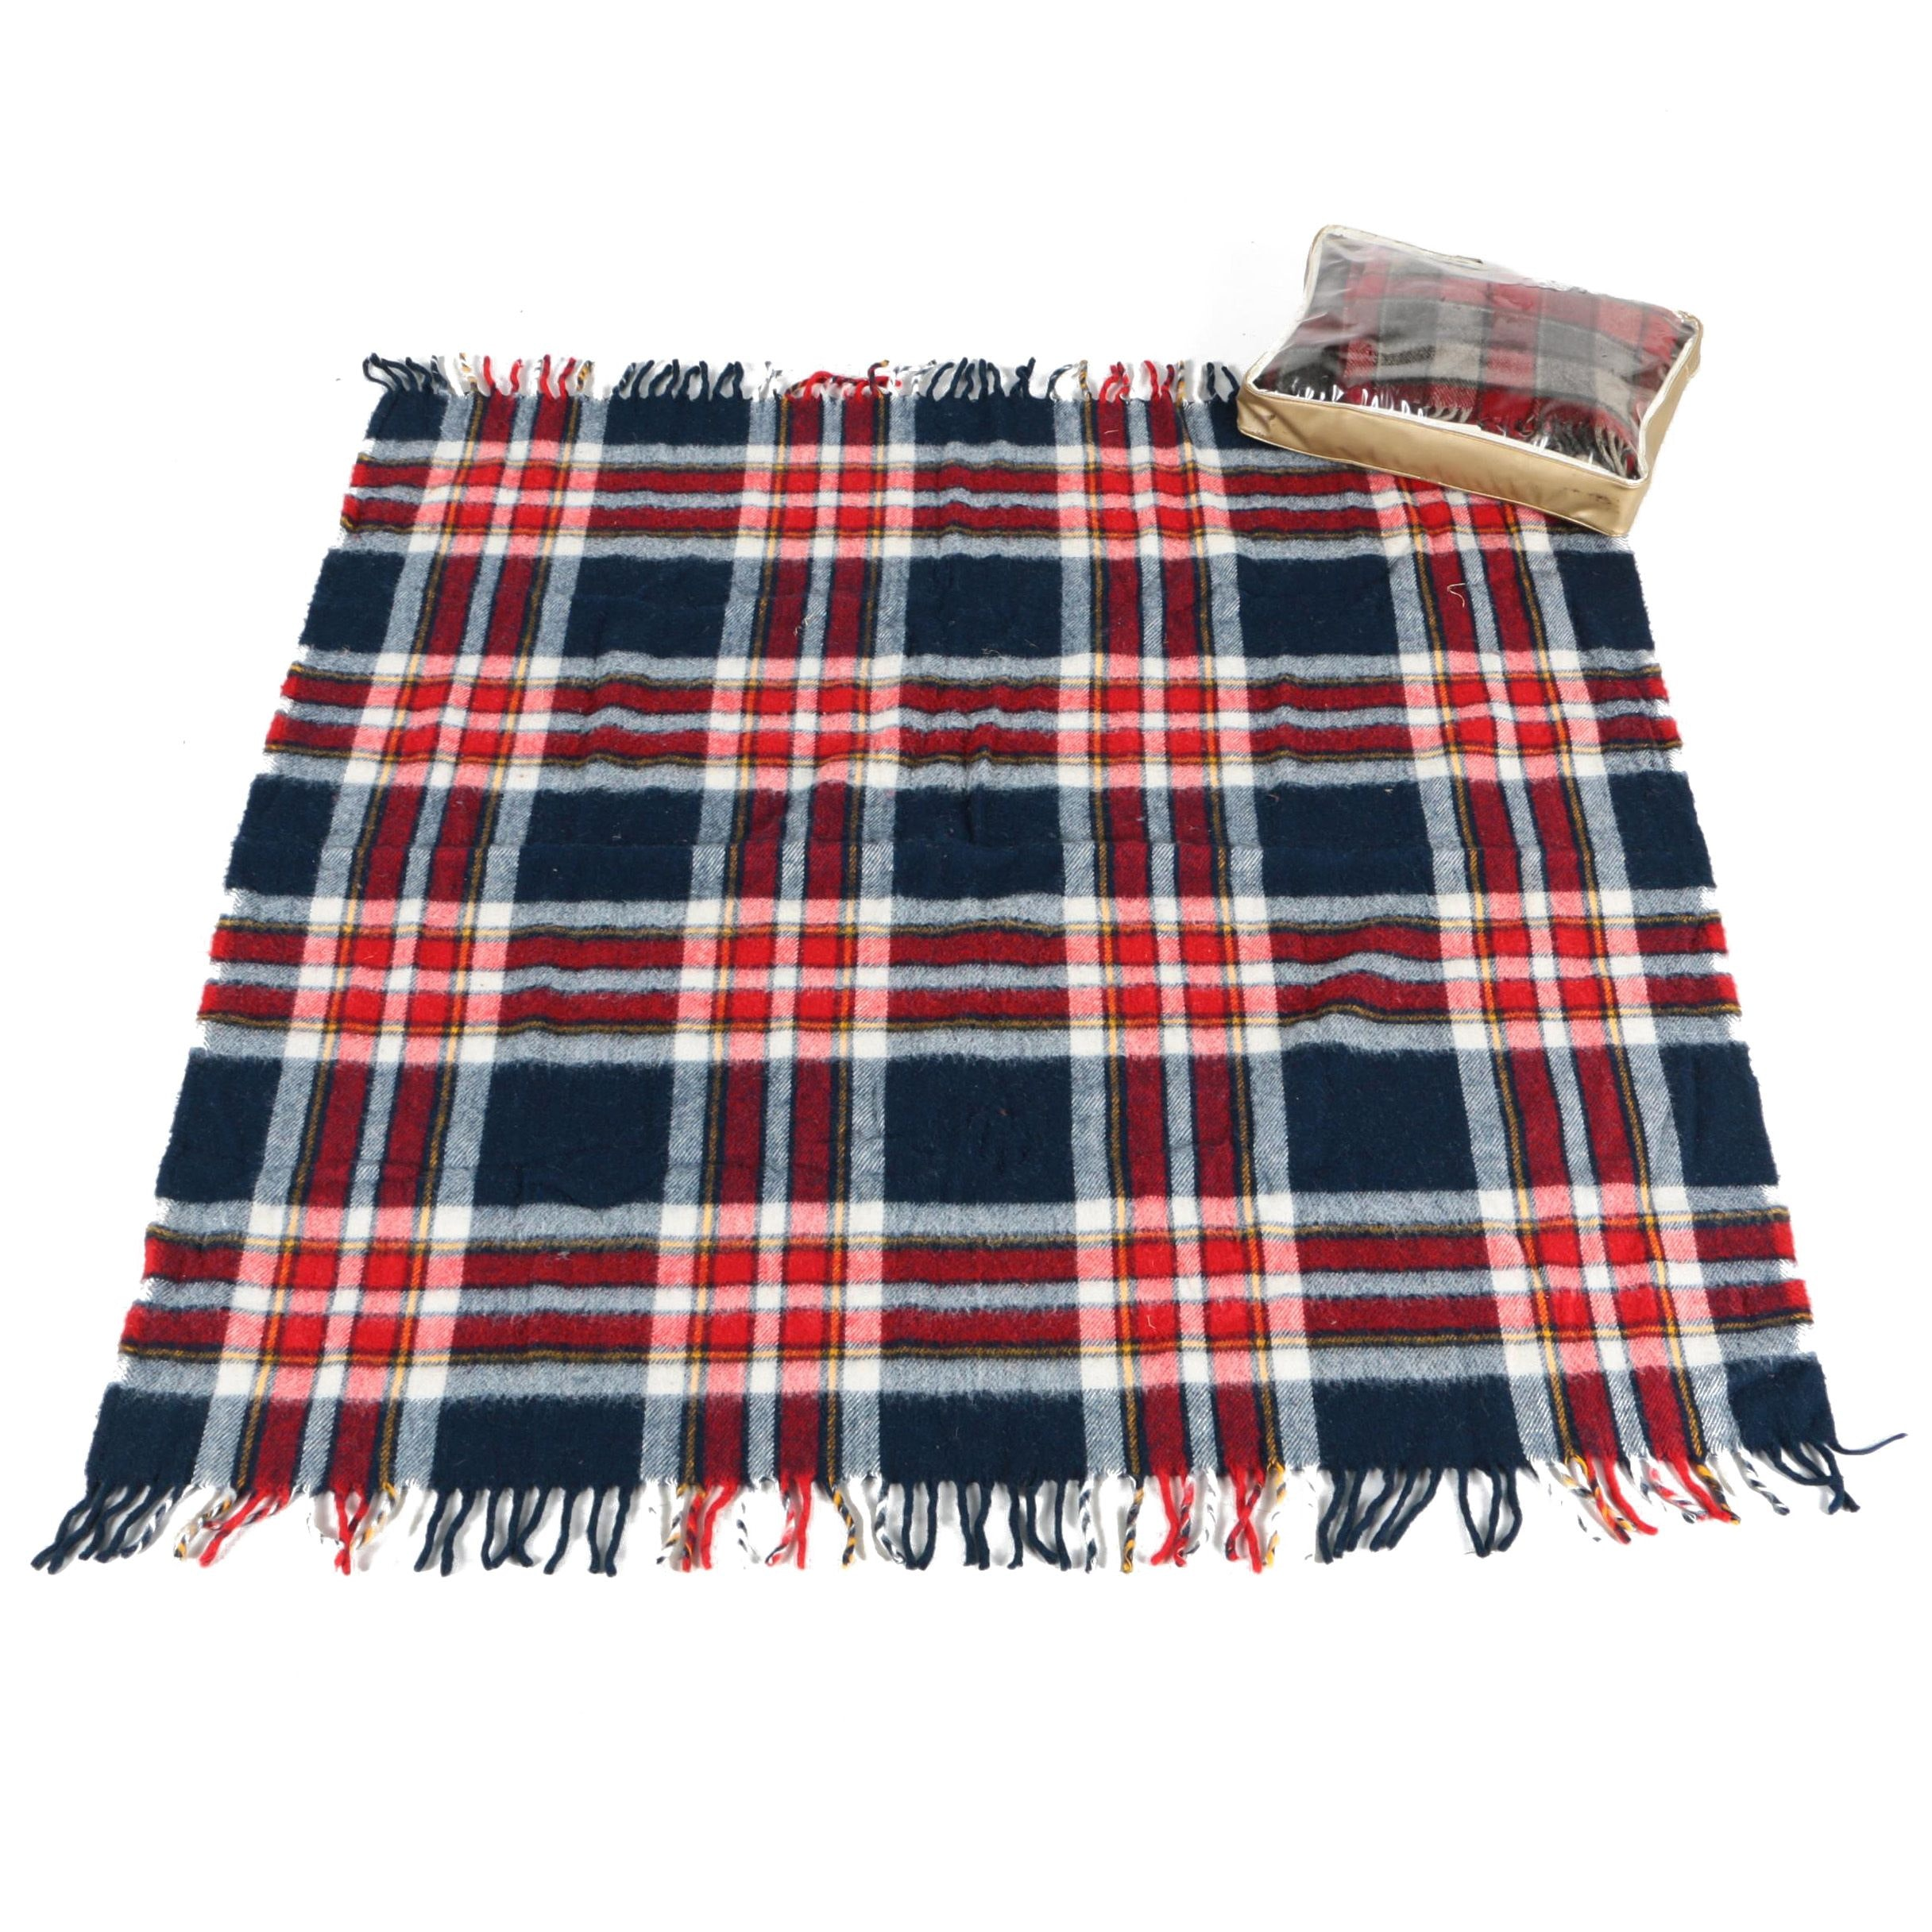 Wool Blankets Including Faribo